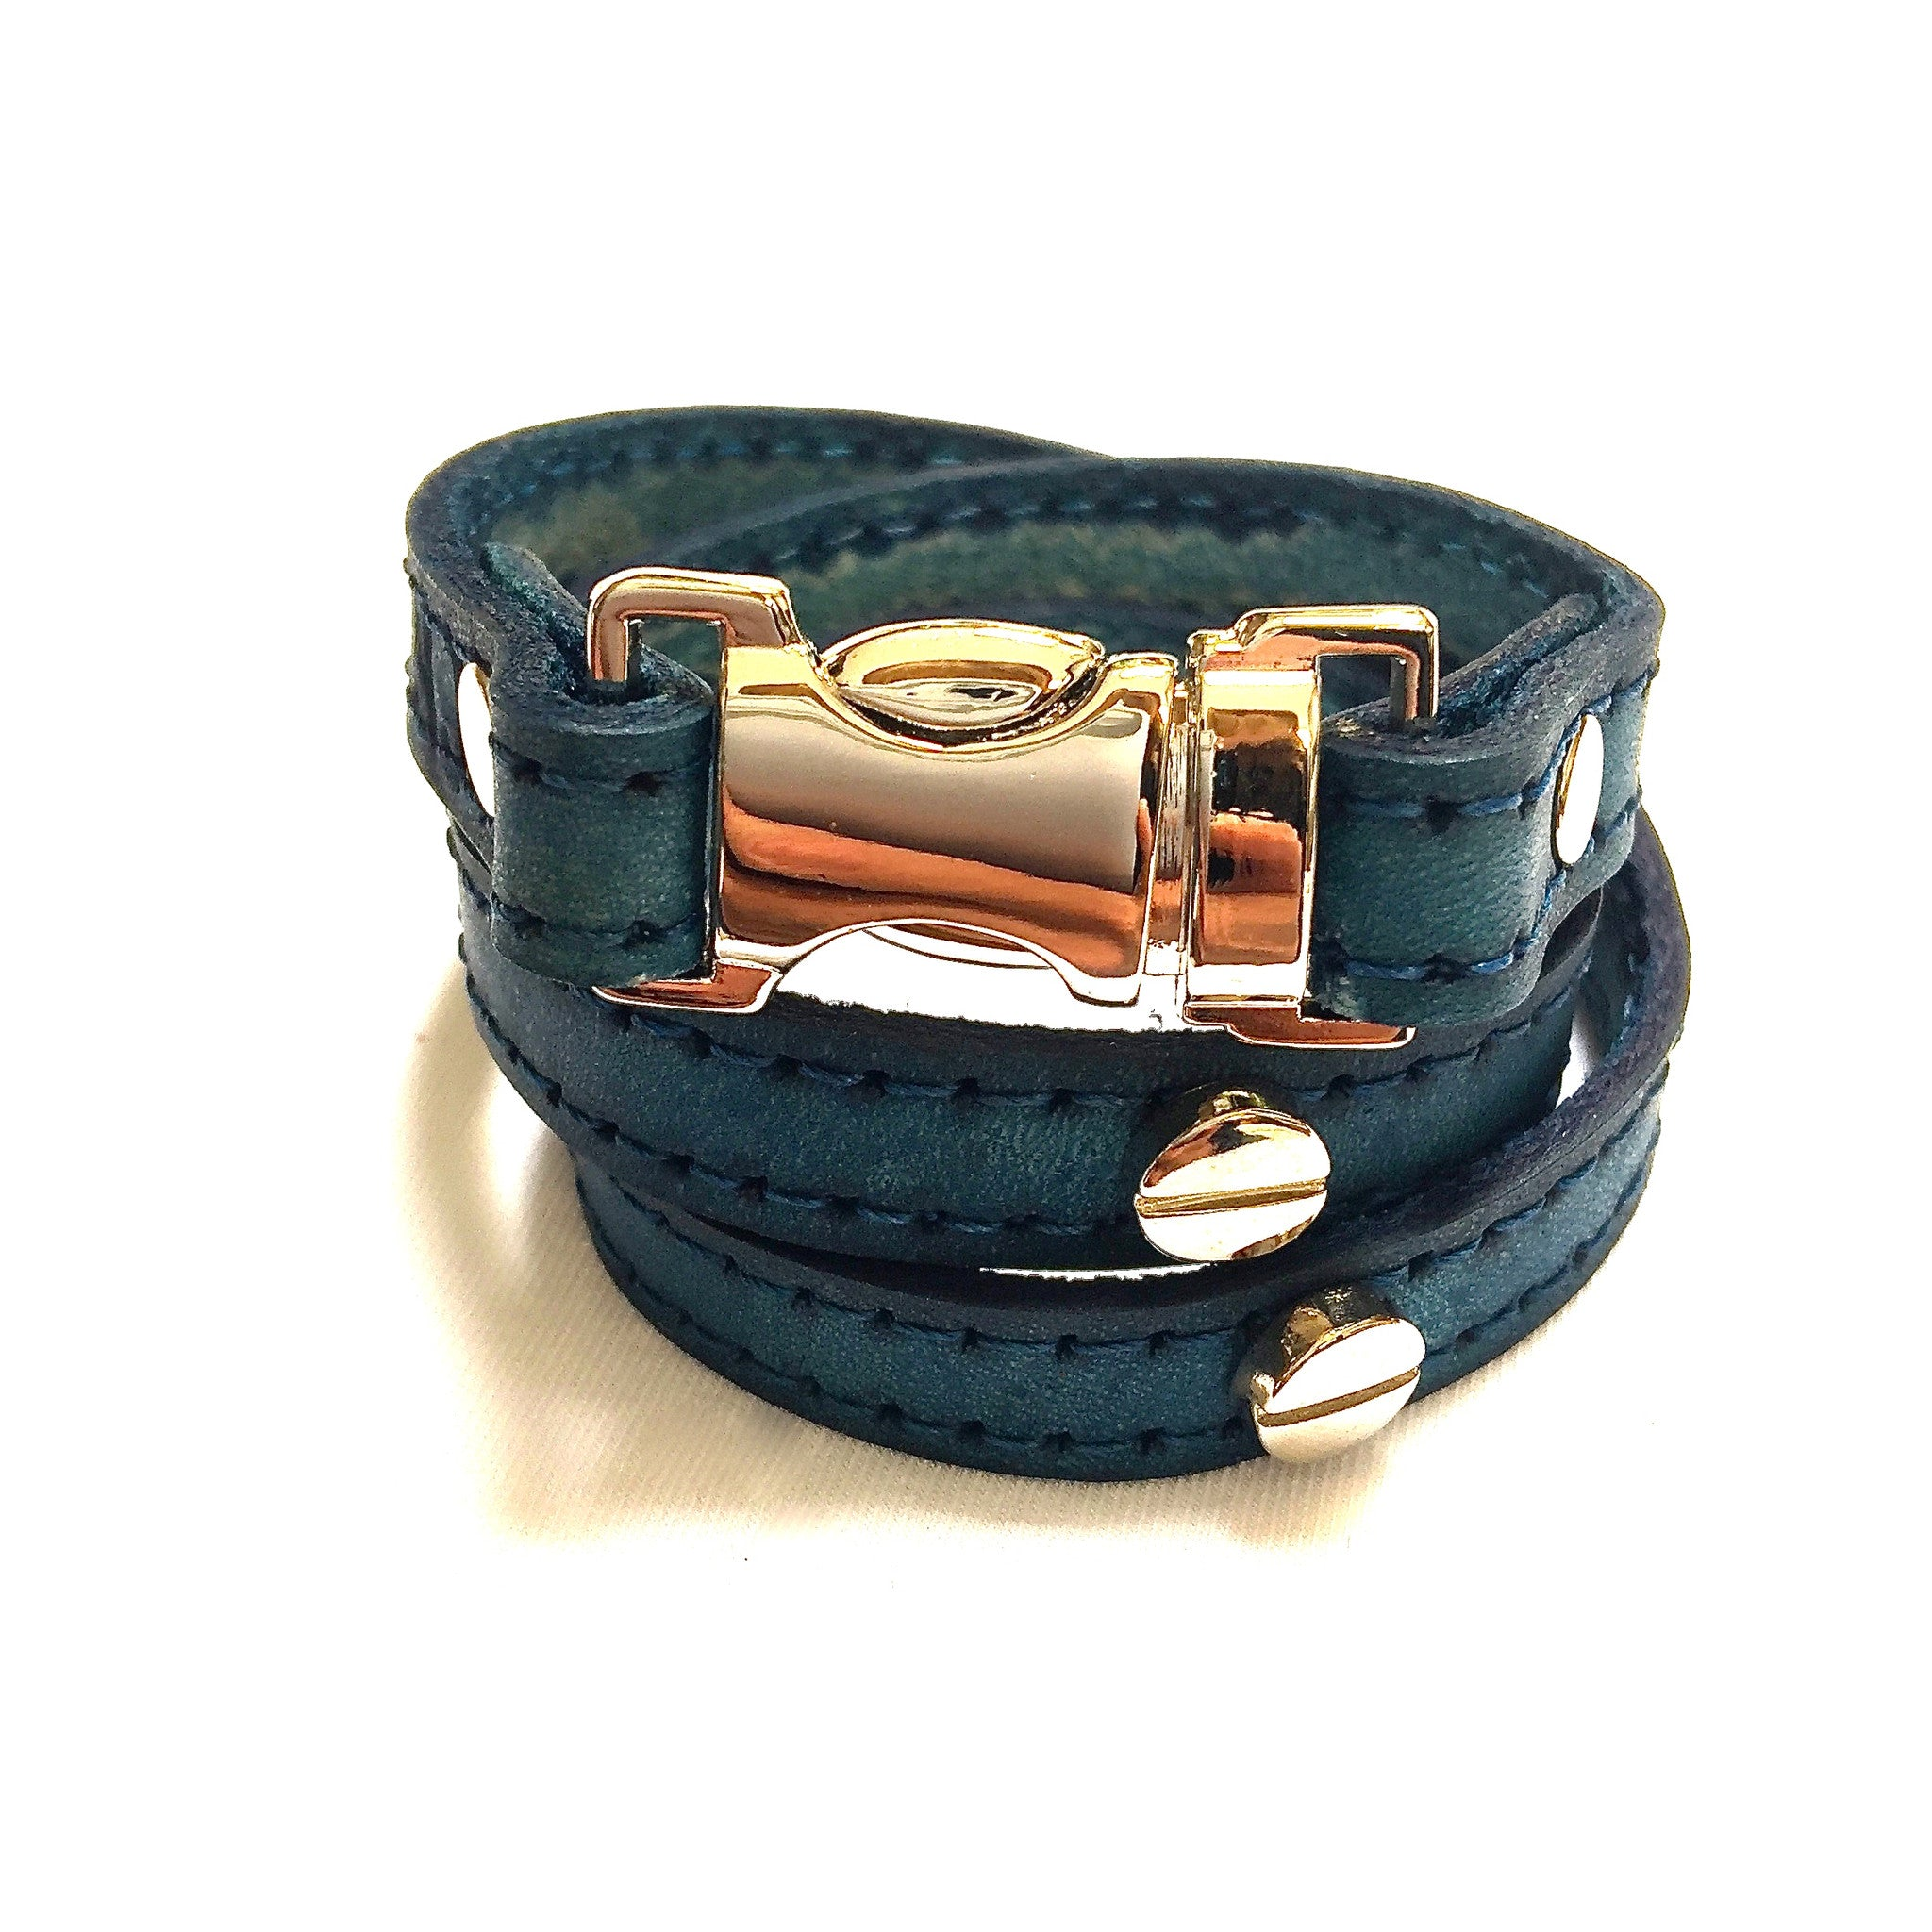 TRIPLE WRAPAROUND LEATHER BRACELET WITH SQUEEZE CLASP BUCKLE AND SCREW TOP RIVETS by nyet jewelry.